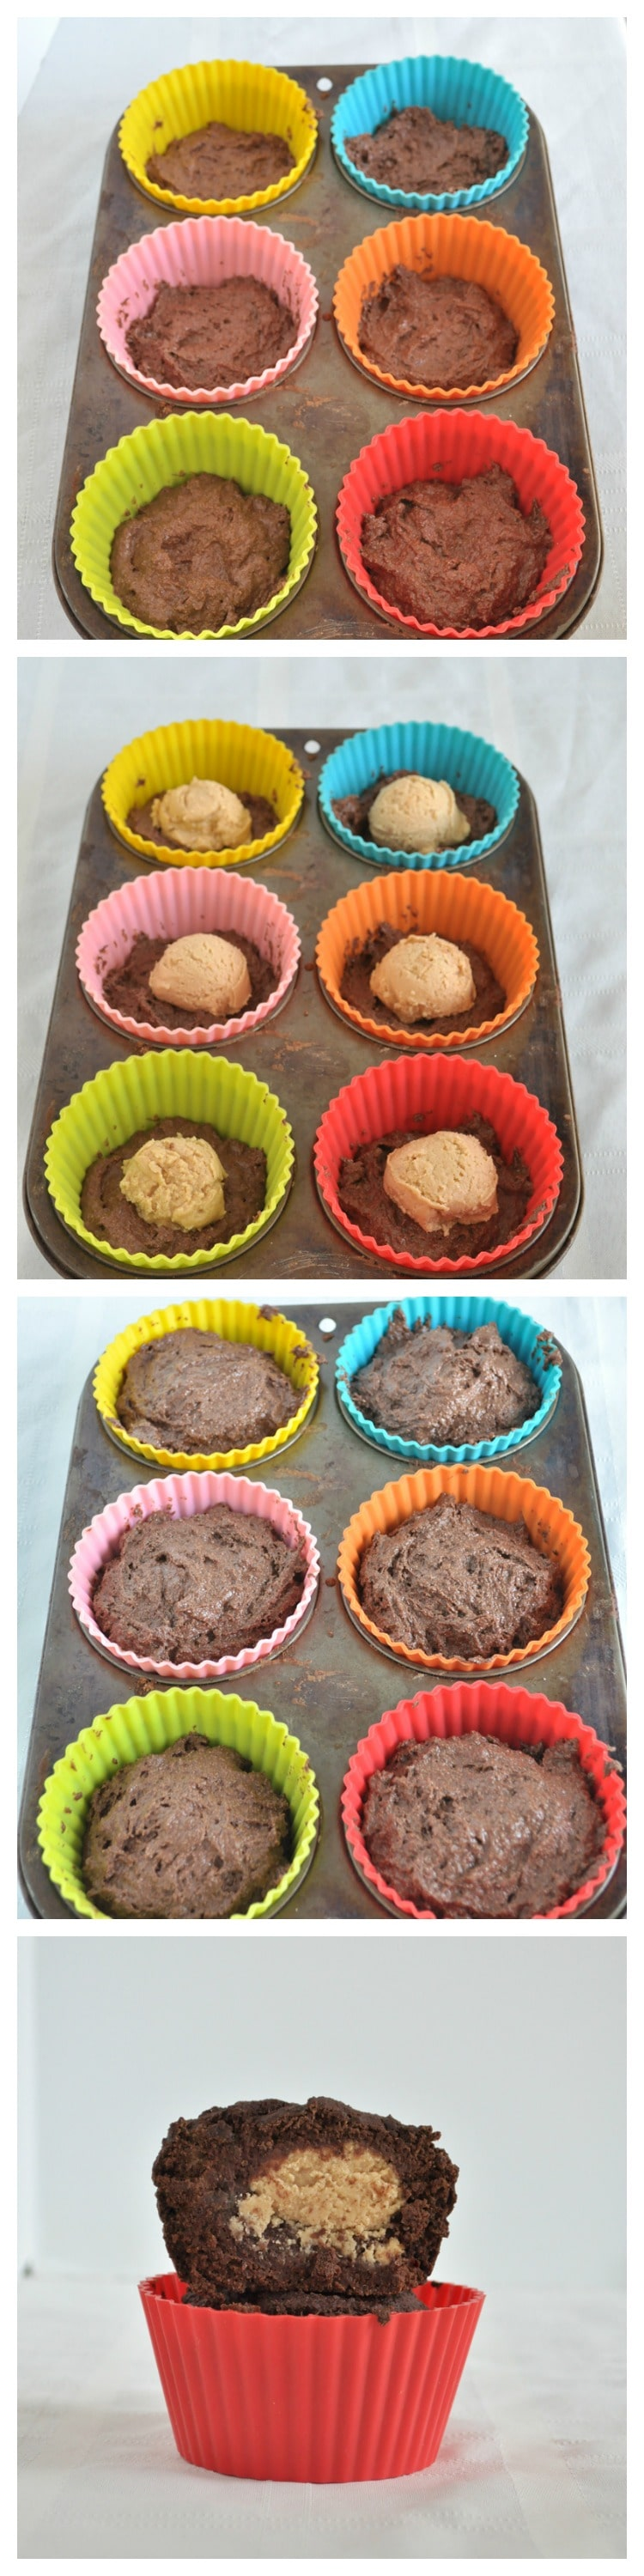 Peanut Butter Cup Muffins Steps